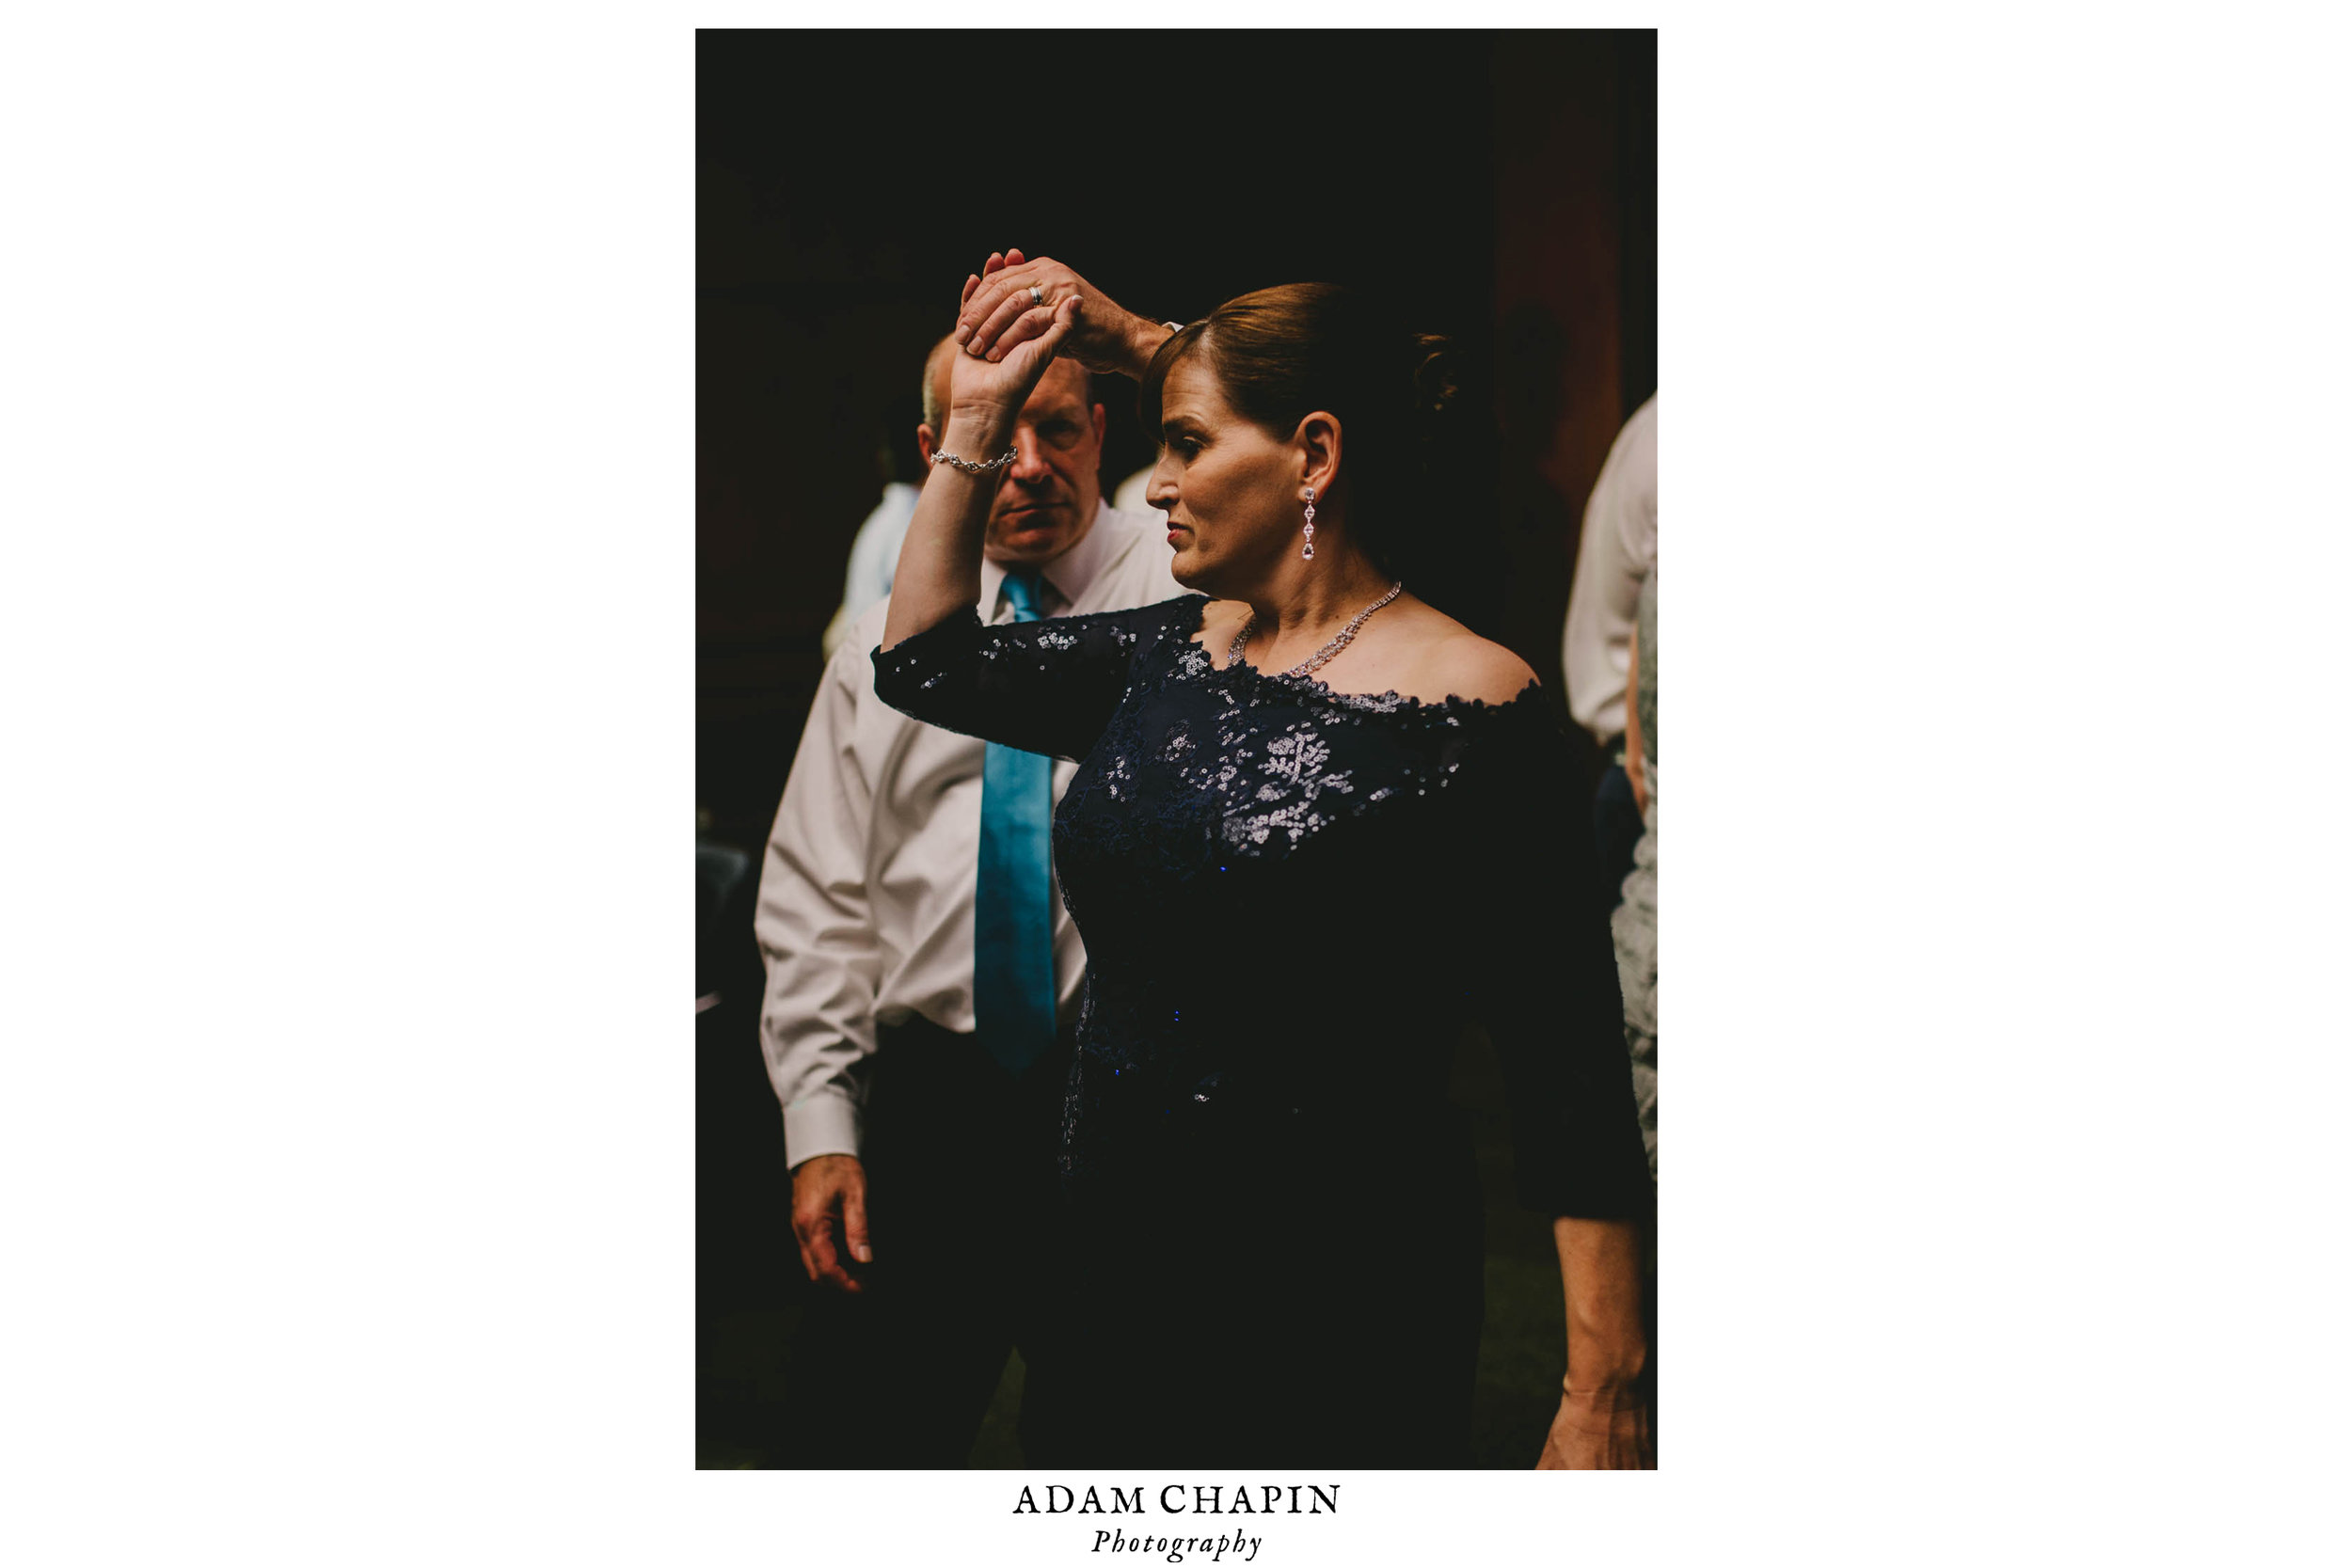 21c-hotel-durham-wedding-reception-dancing-photo.jpg